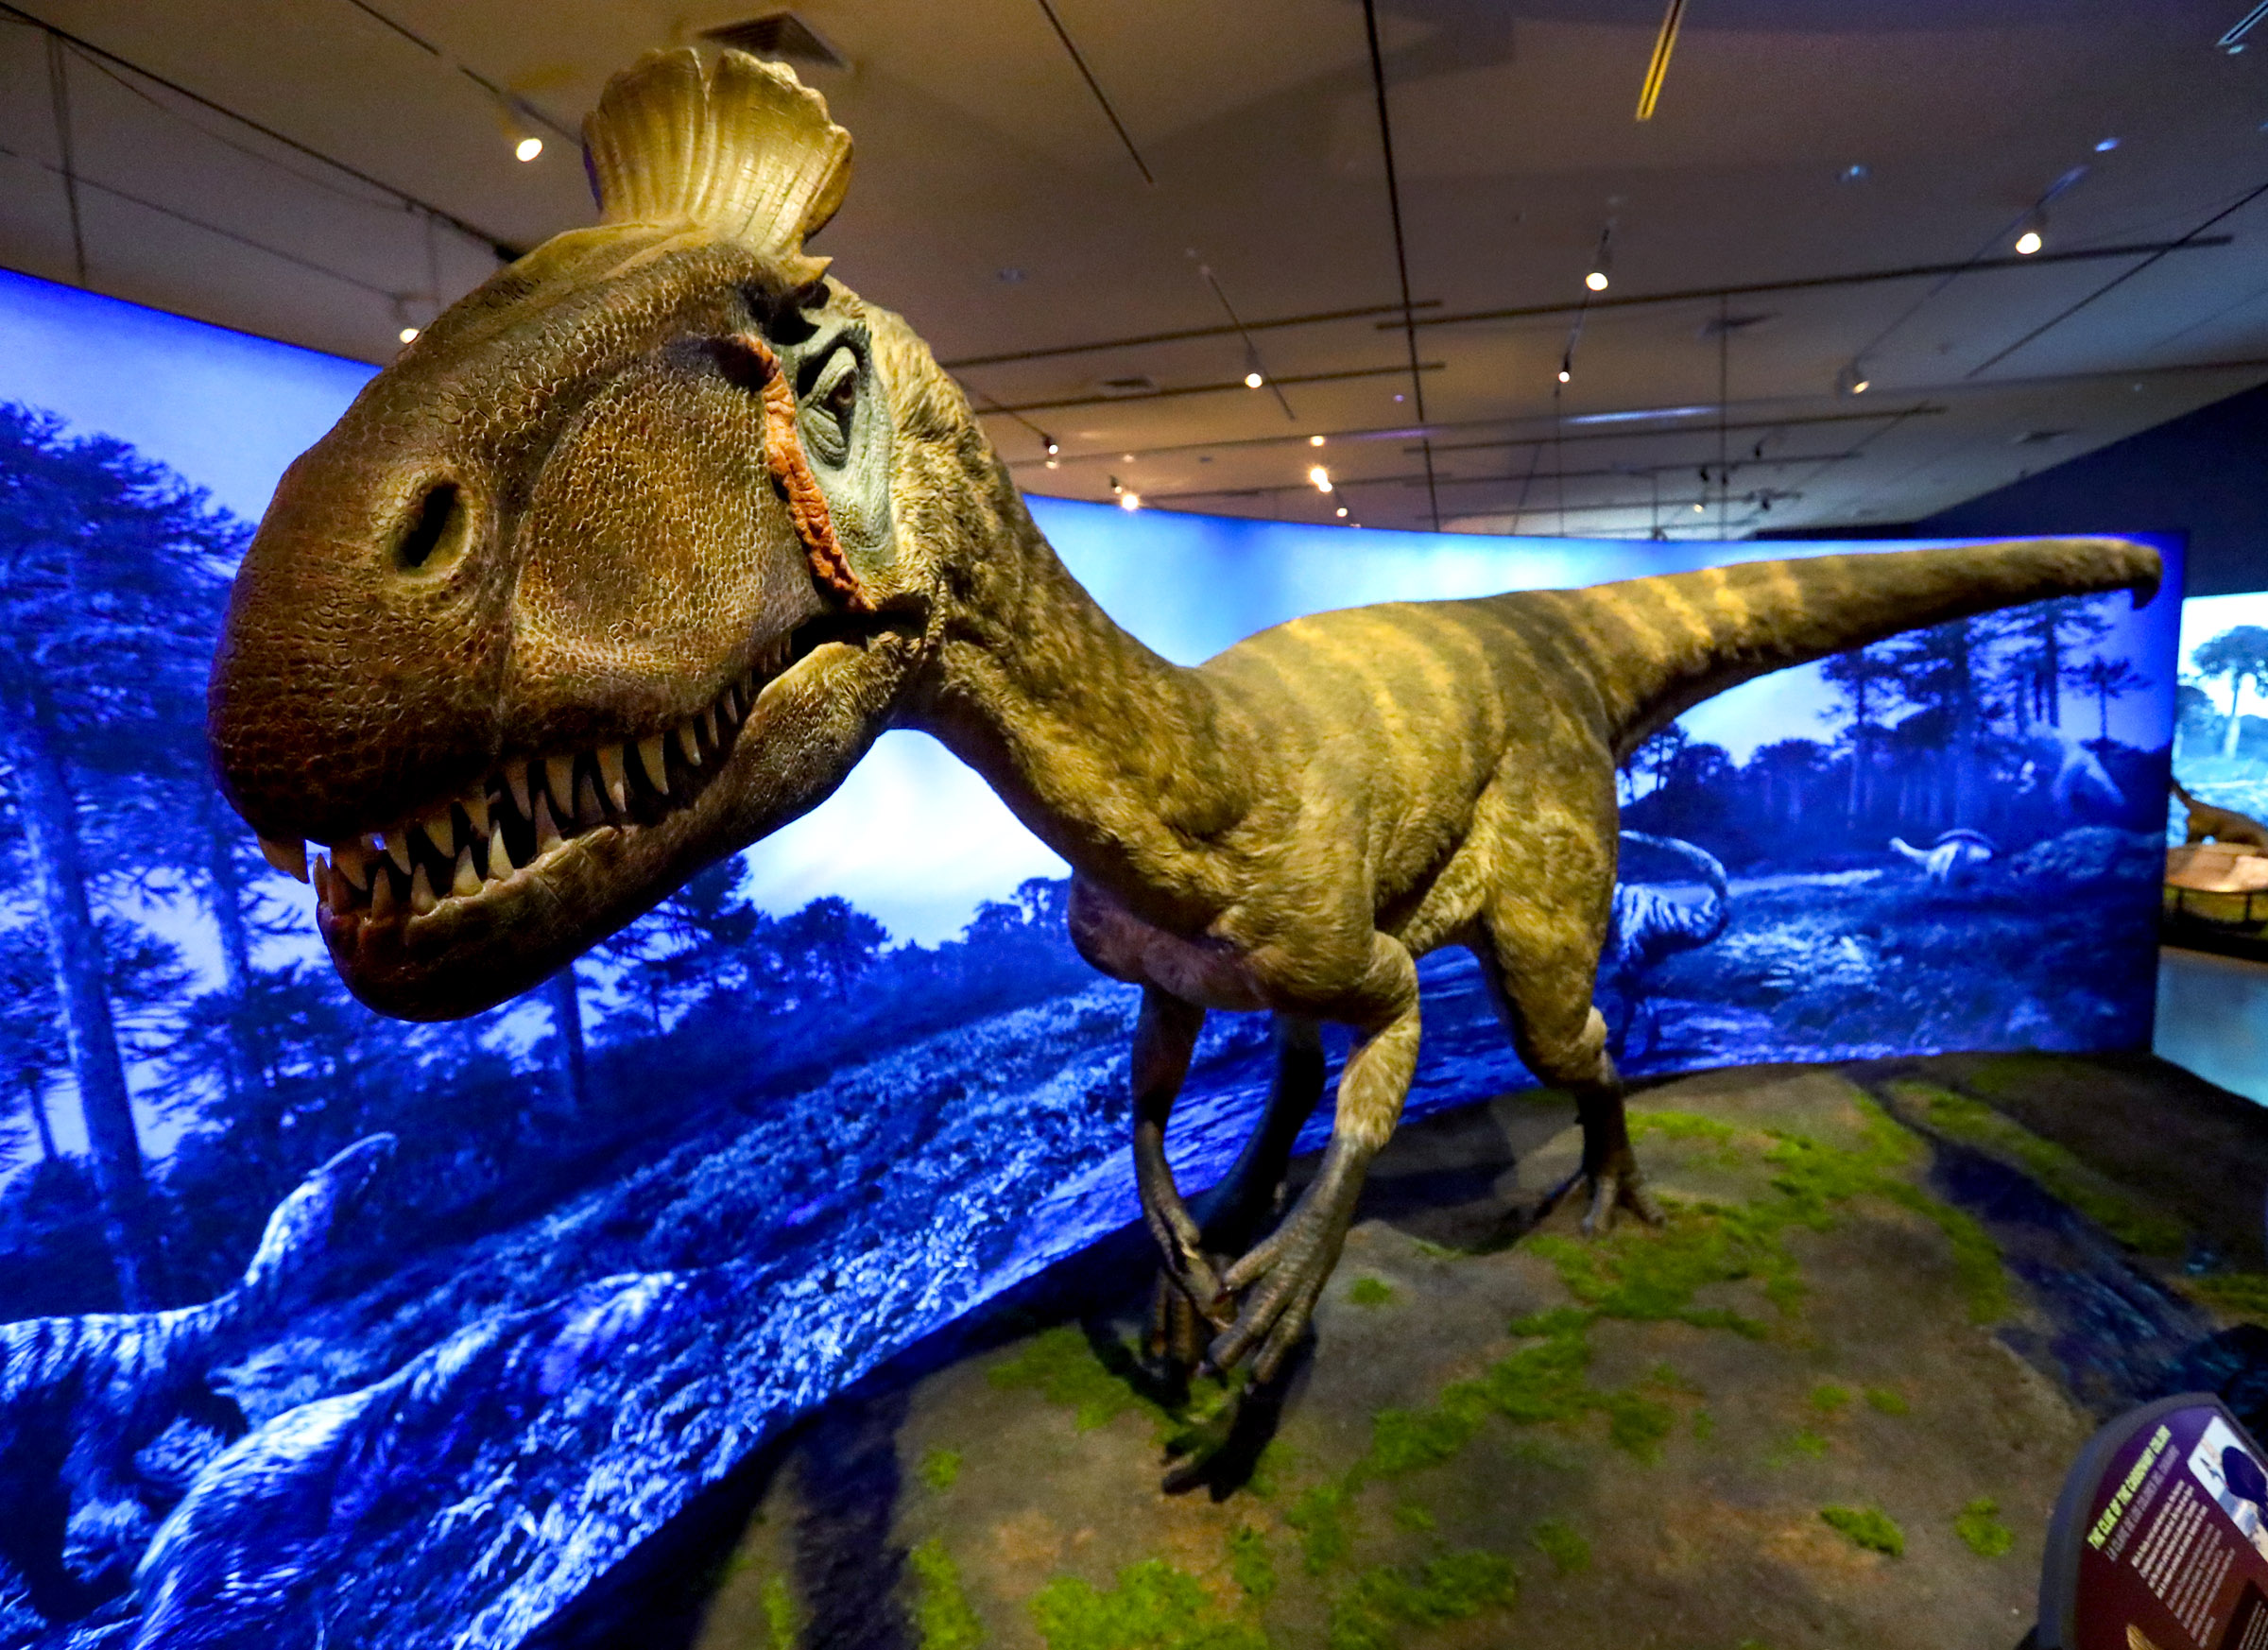 A life-sized replica of a Cryolophosaurus is on display in the Antarctic Dinosaurs exhibit at the Natural History Museum of Utah in Salt Lake City on Friday, Oct. 23, 2020.The exhibit guides visitors through what was once a lush, thriving continent and explains how paleontologists carefully extracted four Antarctic dinosaur species from the now-frozen landscape.